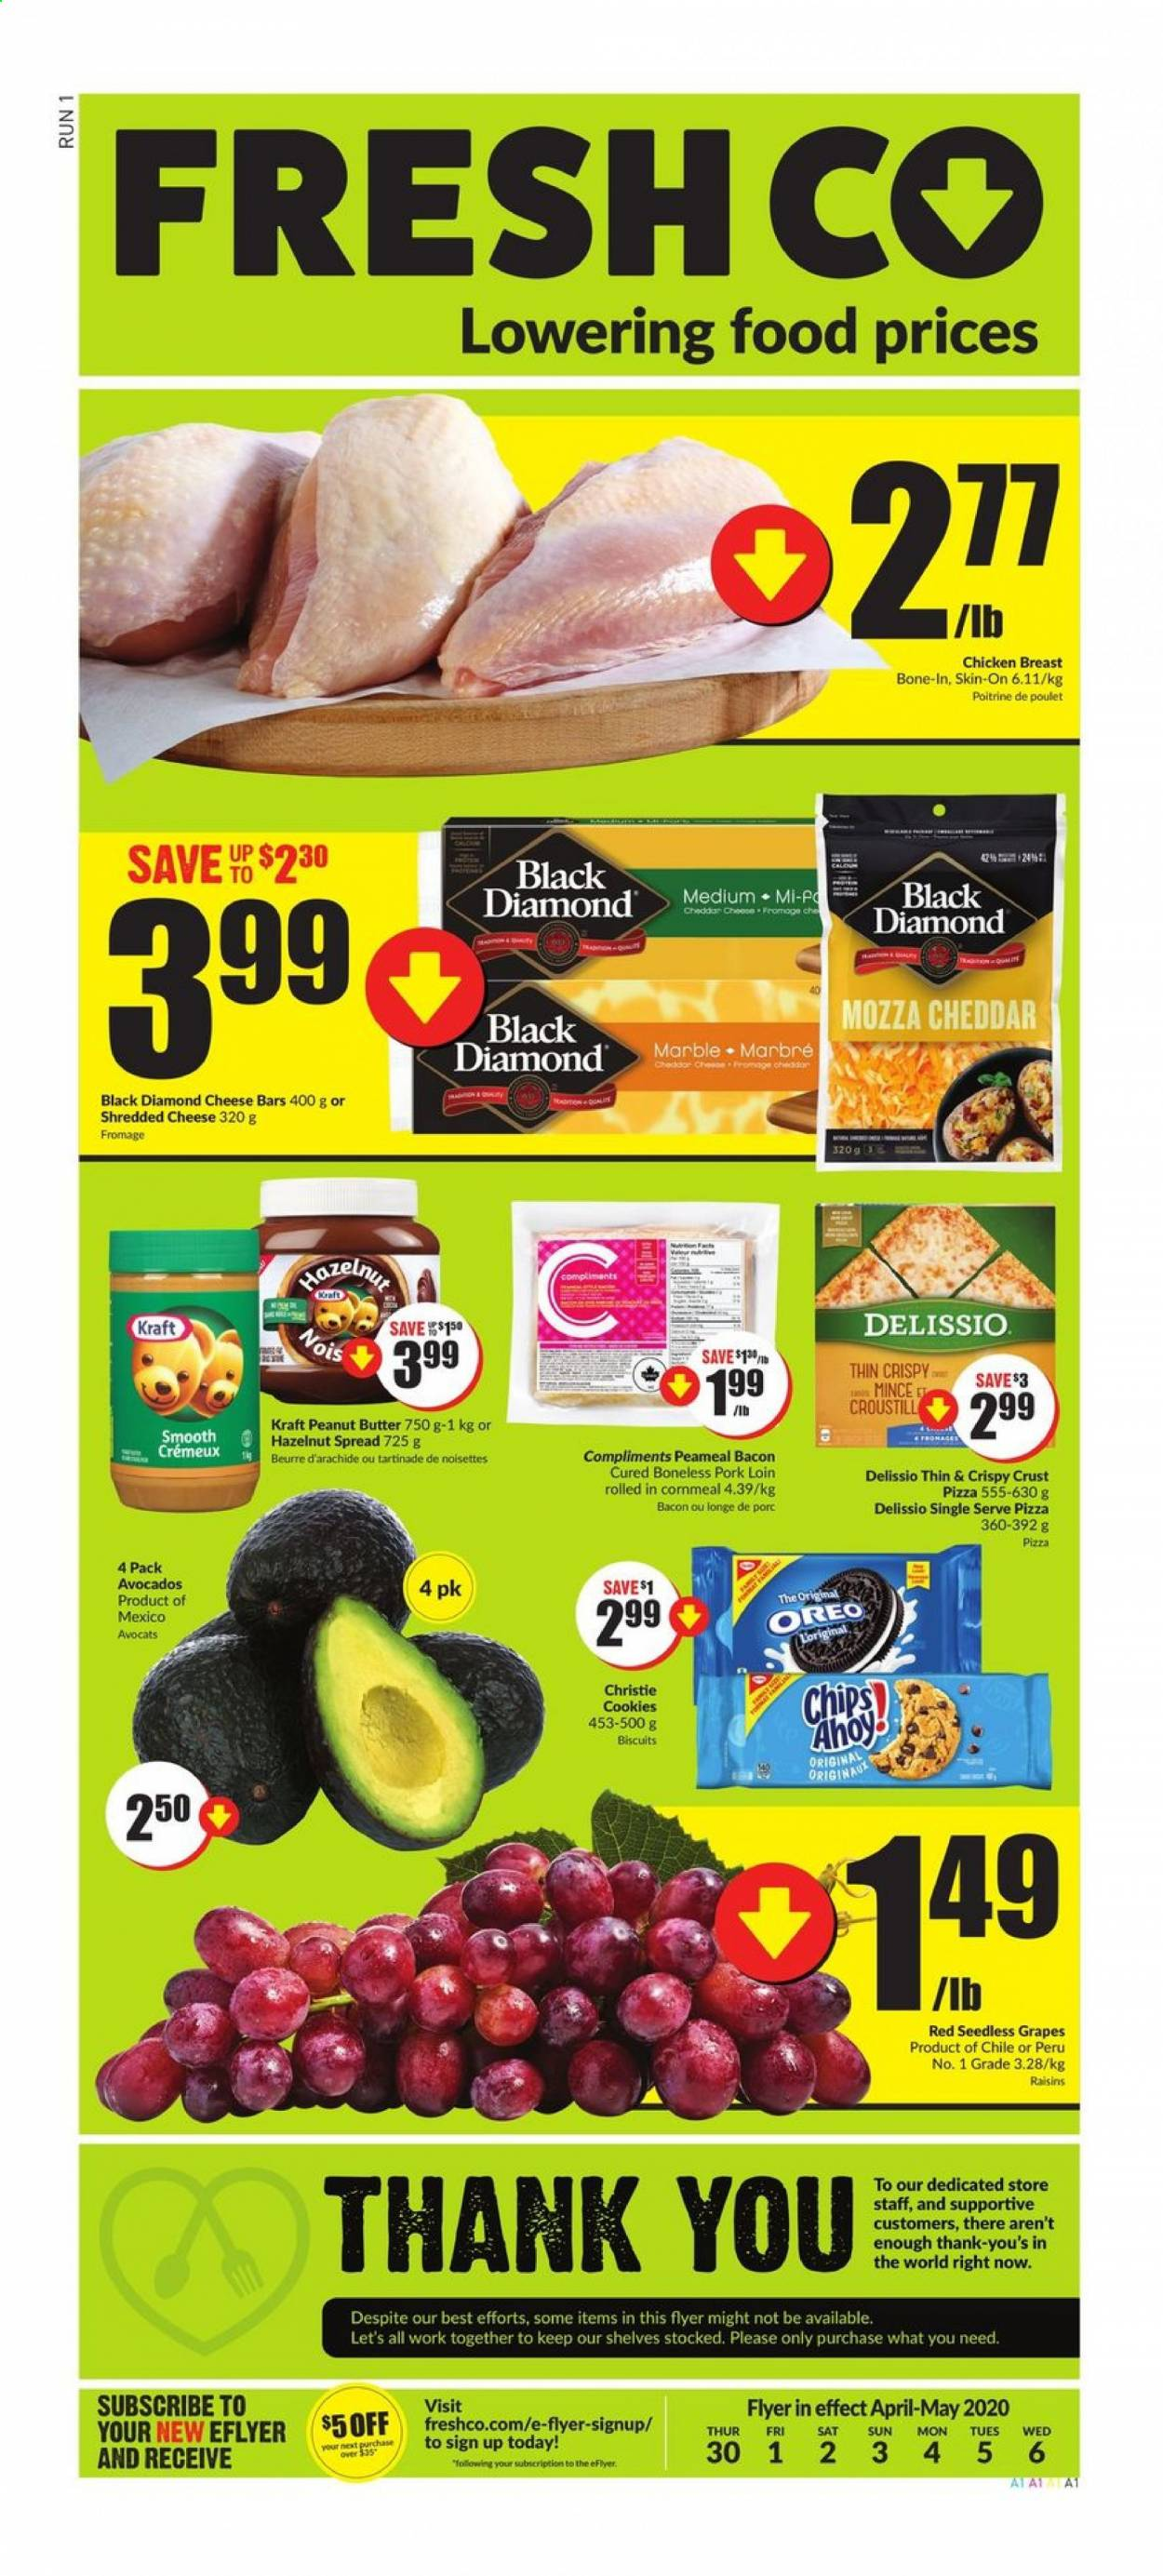 FreshCo. Flyer  - April 30, 2020 - May 06, 2020. Page 1.